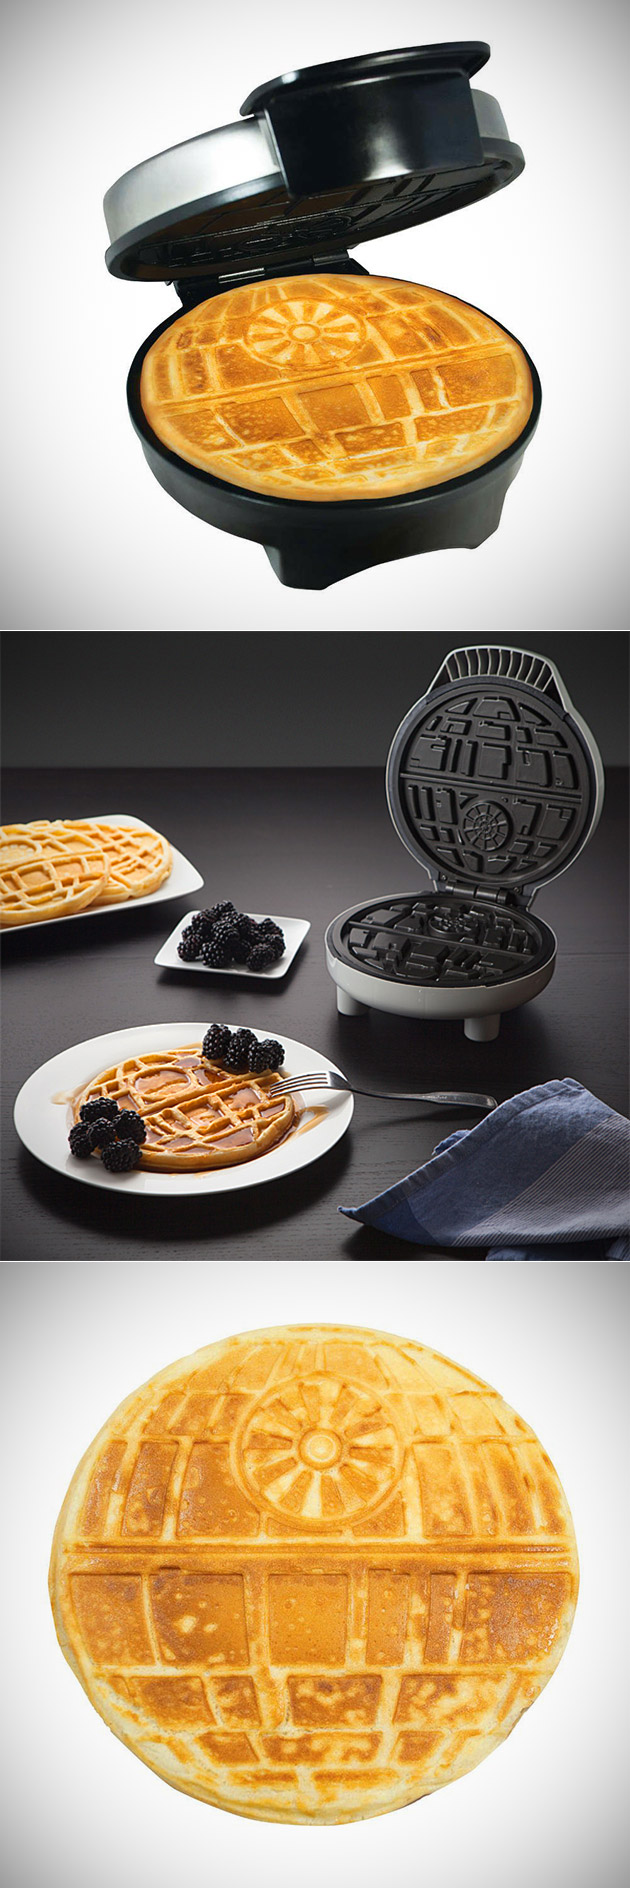 Staggering Star Wars Death Star Waffle Maker Death Star Waffle Maker More Product Star Wars Waffle Maker Kohl S Star Wars Waffle Maker Nz nice food Star Wars Waffle Maker